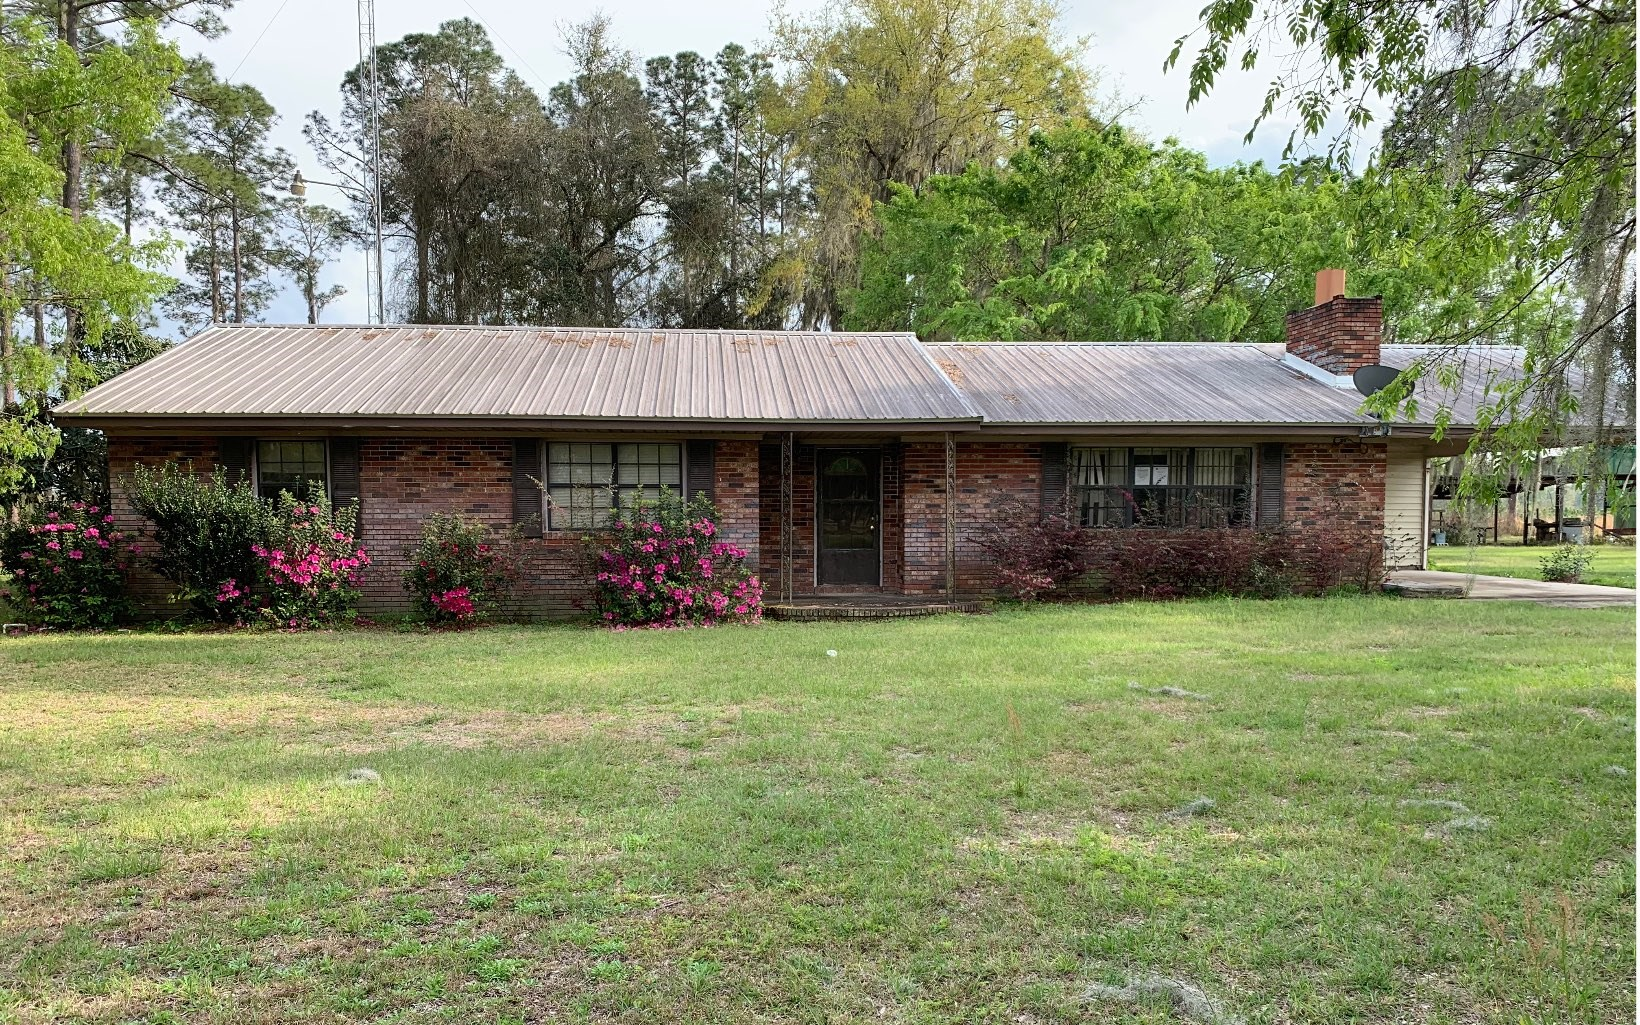 4 bedroom, 2 bath brick home on 5.77 acres.